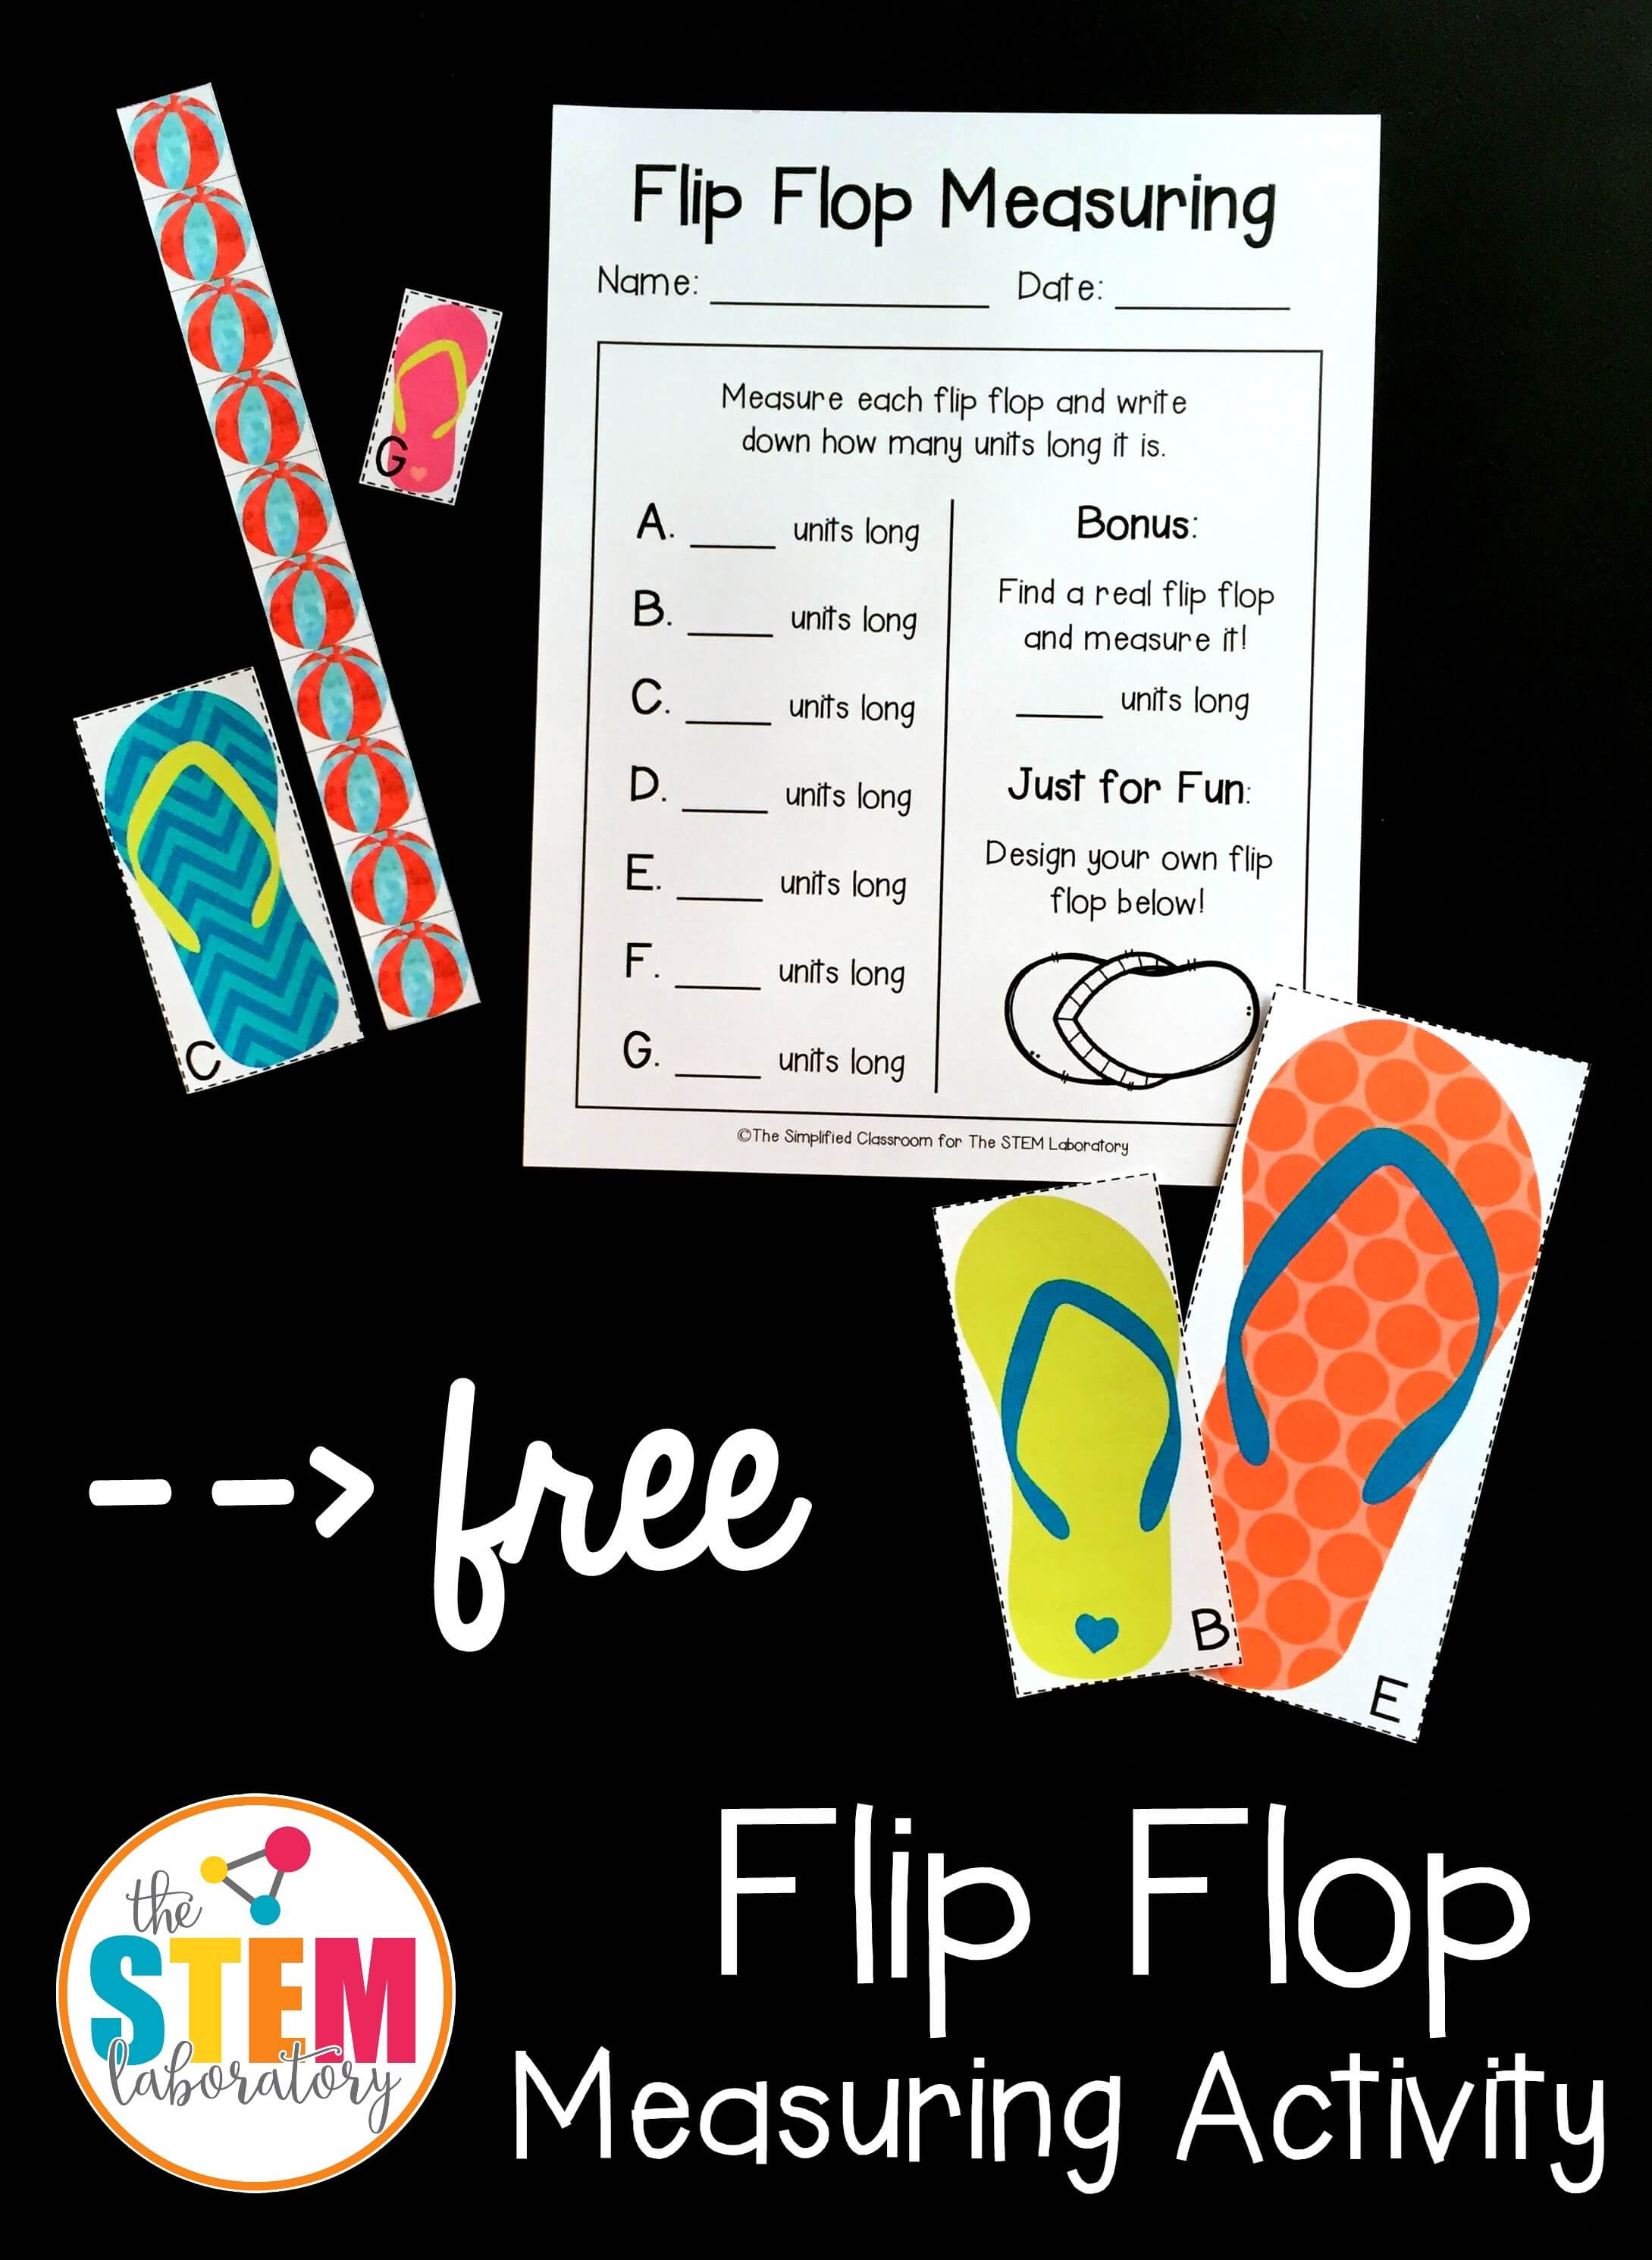 What goes together what doesn t belong fun worksheets and cut and - Cards Flip Flop Measuring